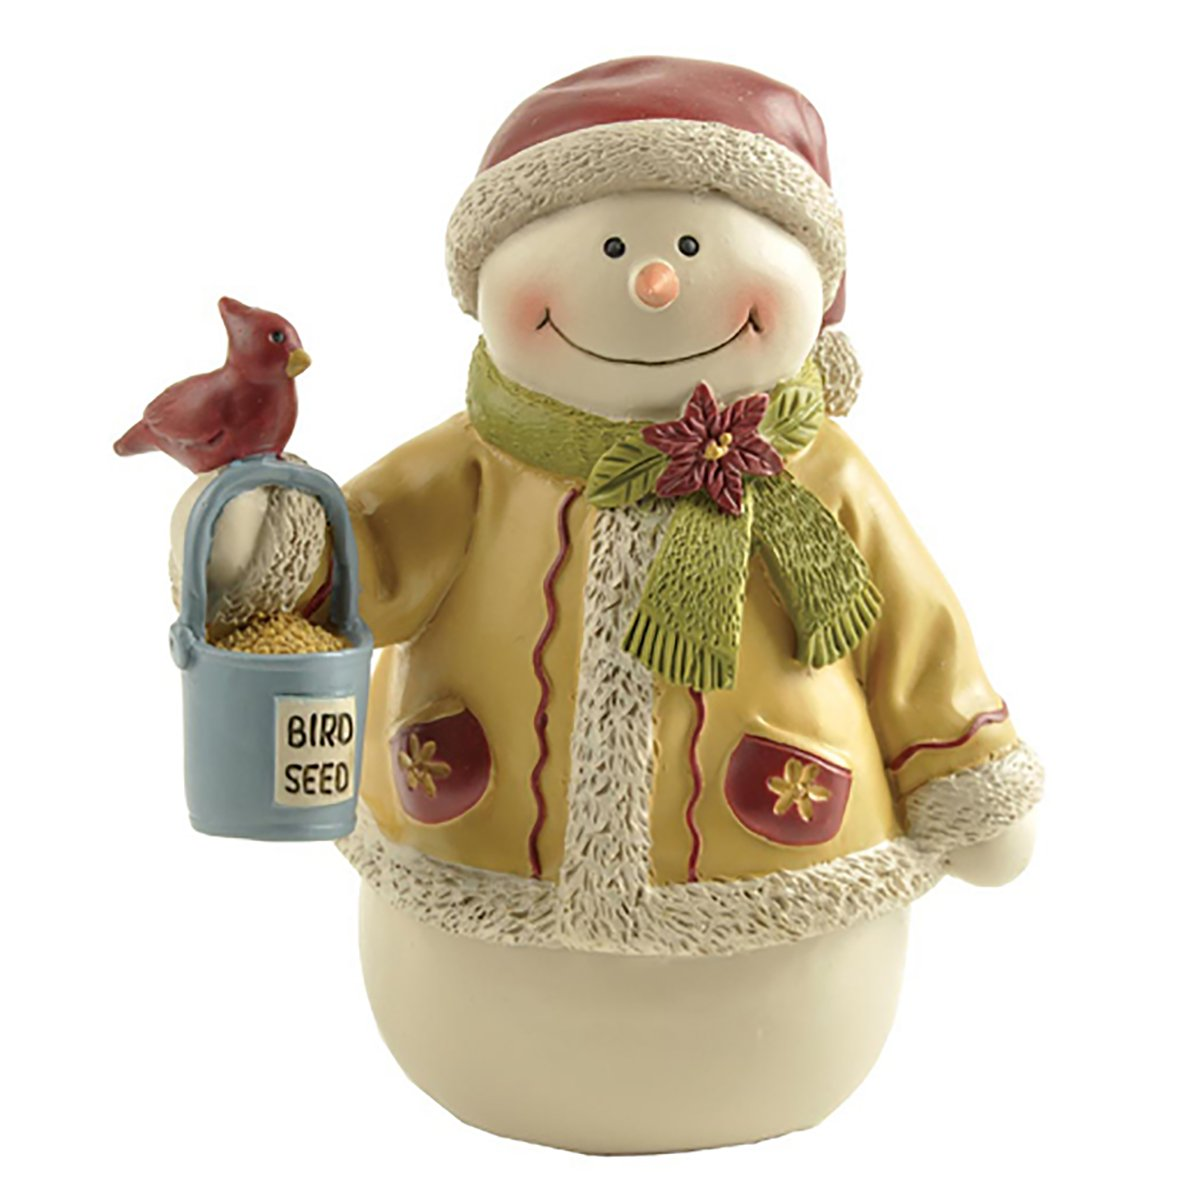 Image of Cardinal with Christmas Snowman Figurine - See More Snowman Figures